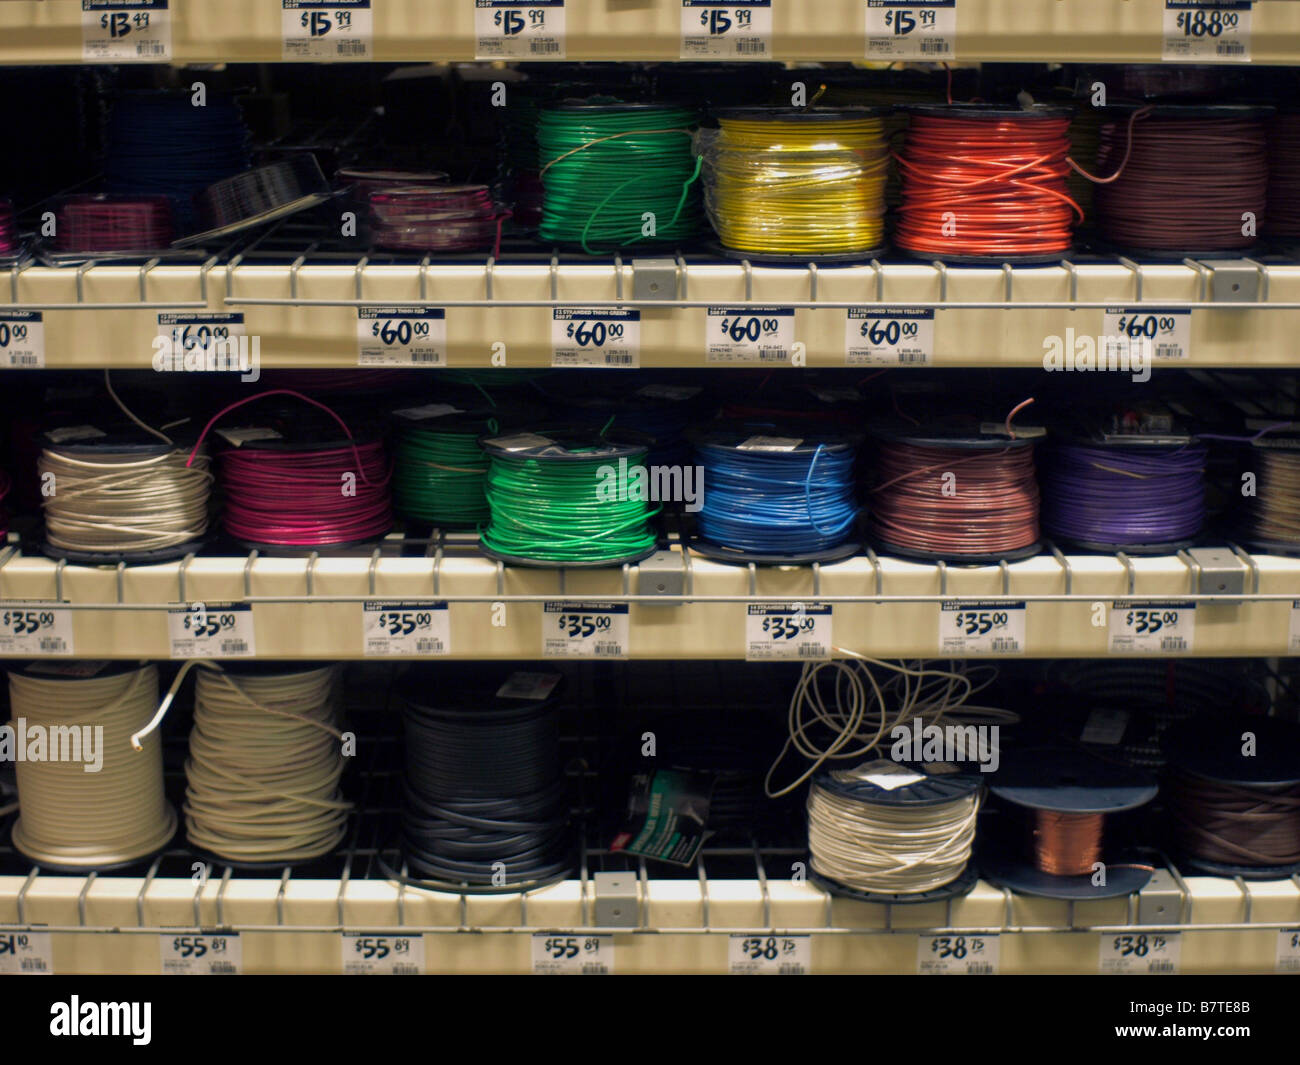 Marvelous Spooled Electrical Wiring On Display For Sale At A Home Improvement Wiring Database Liteviha4X4Andersnl